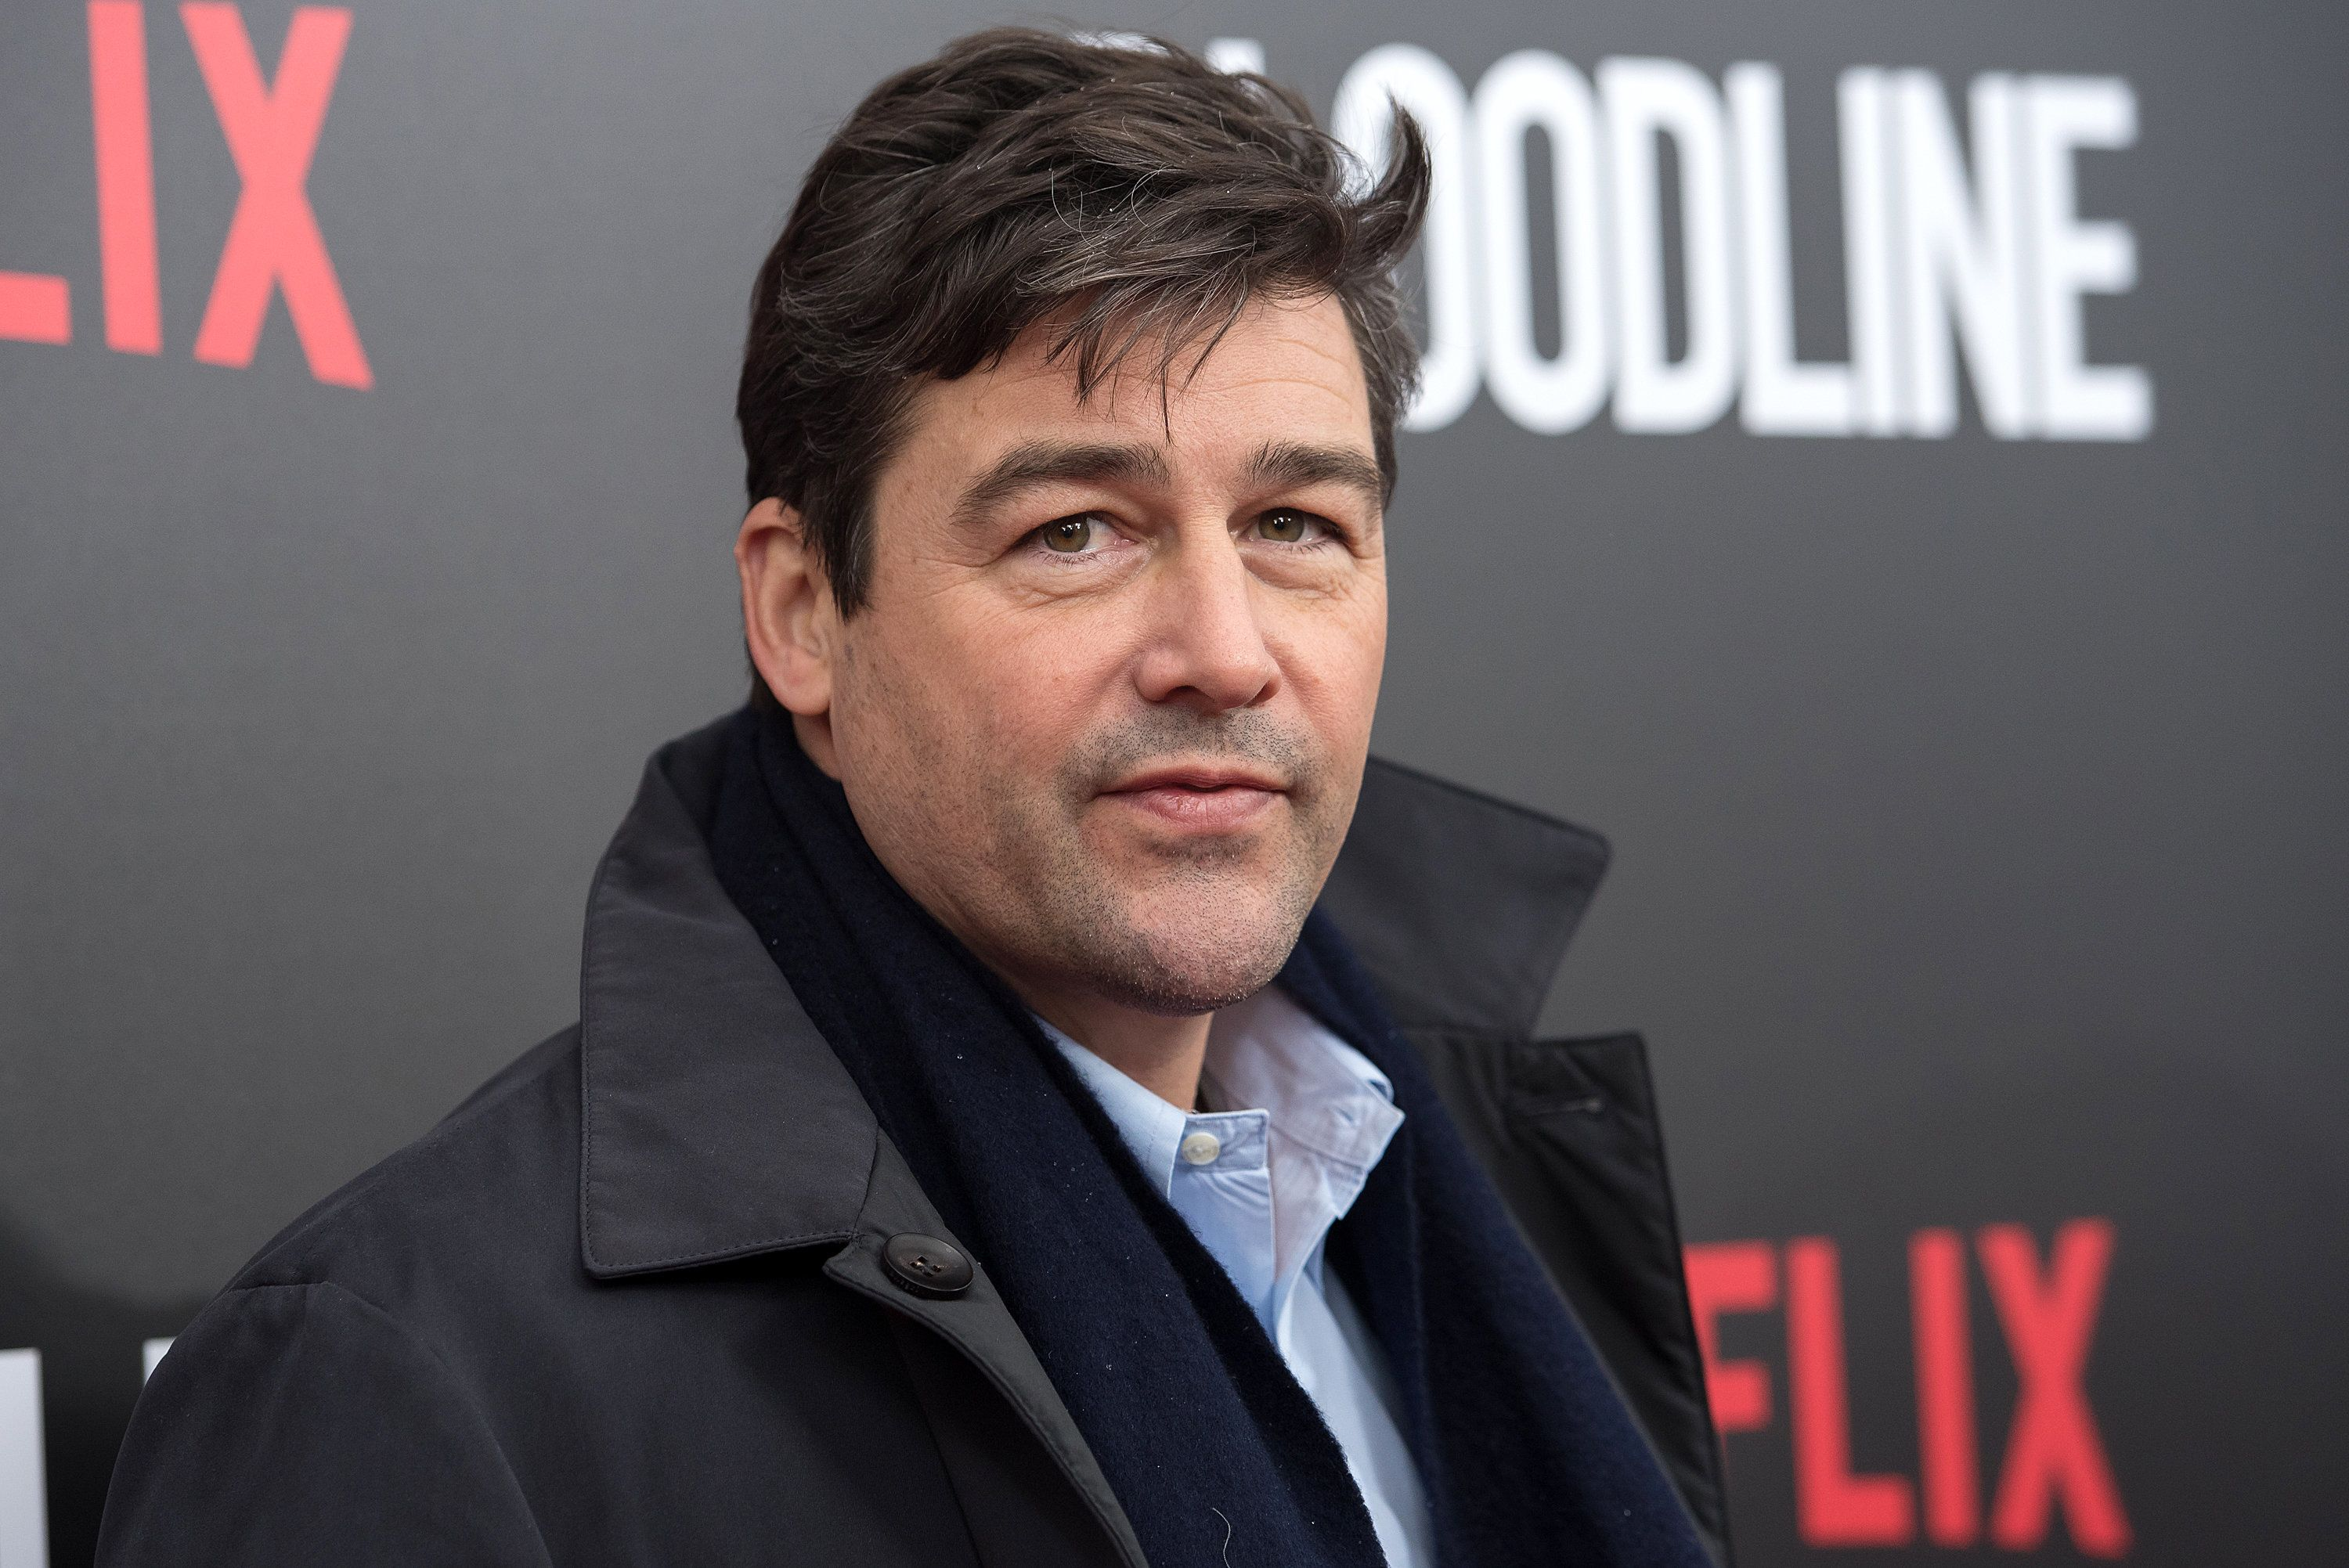 NEW YORK, NY - MARCH 03:  Actor Kyle Chandler attends the 'Bloodline' New York Series Premiere at SVA Theater on March 3, 2015 in New York City.  (Photo by Mike Pont/FilmMagic)